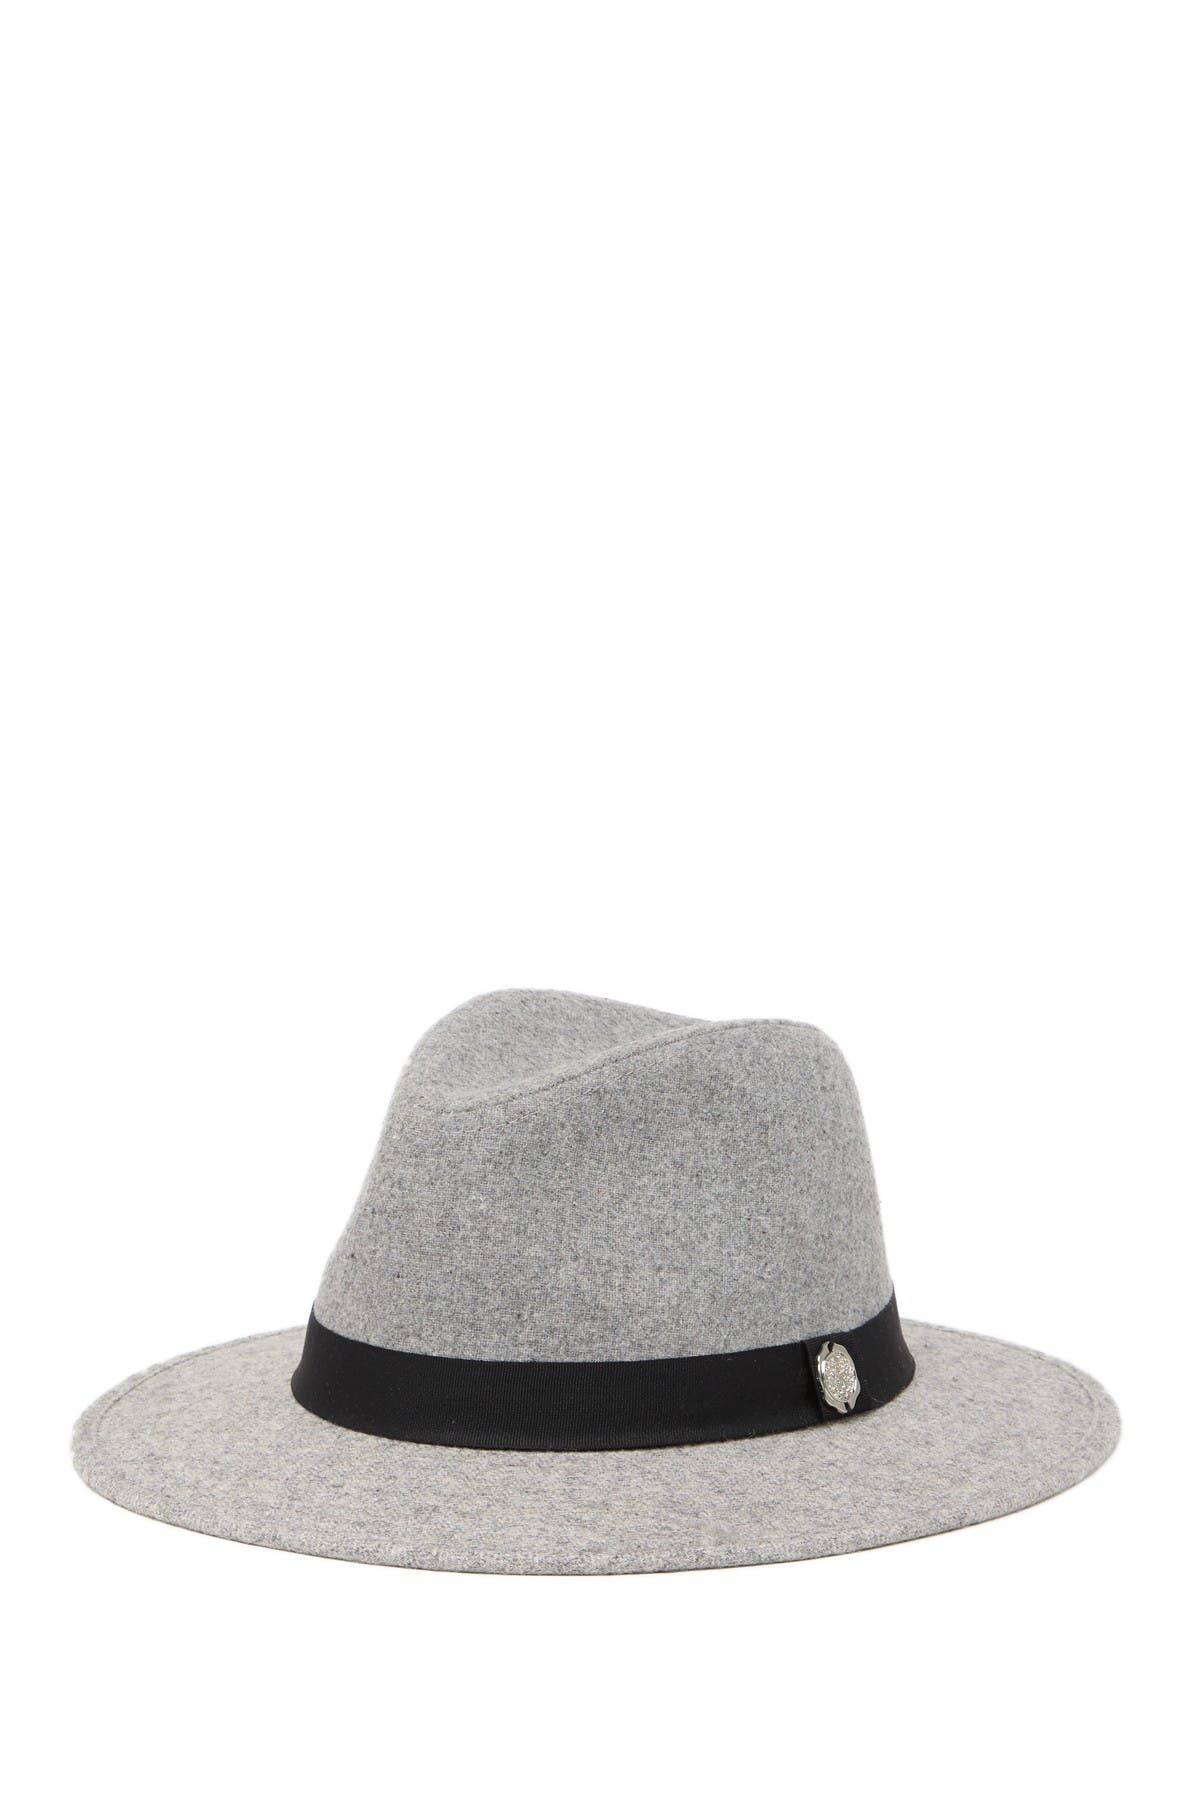 Image of Vince Camuto Cut & Sew Fedora